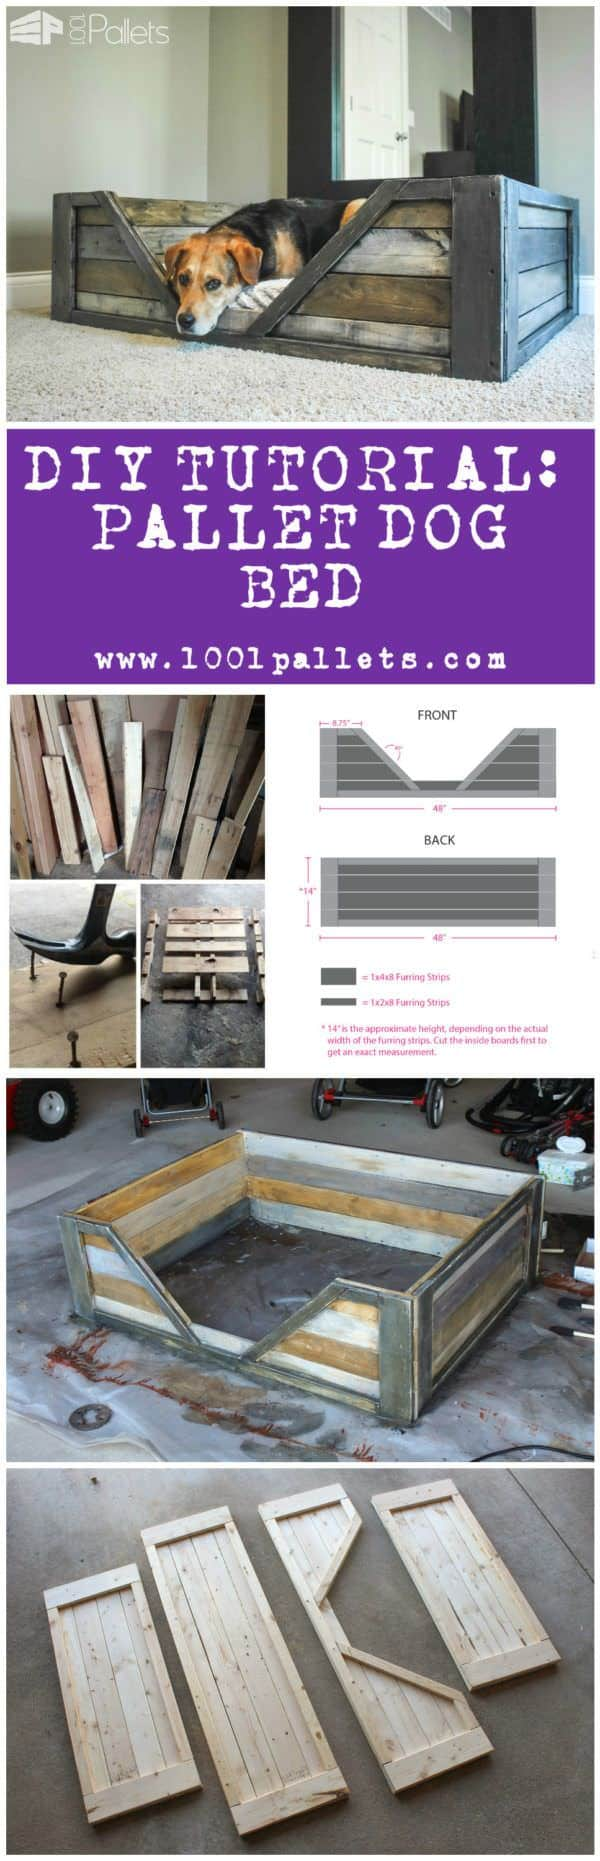 Diy Tutorial: Pallet Dog Bed Animal Pallet Houses & Pallet Supplies Step-By-Step Printable Pallet PDF Tutorials